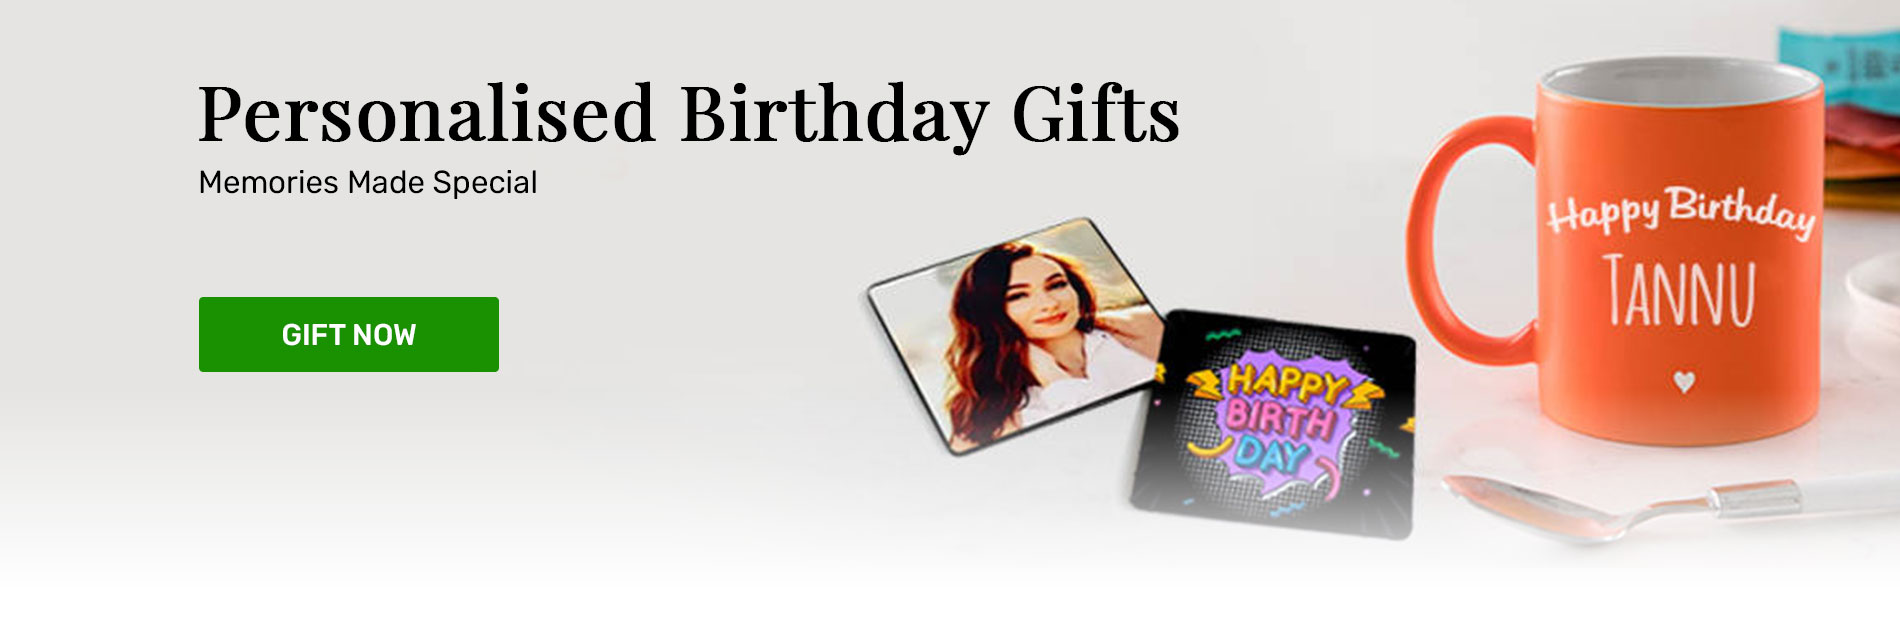 Birthday personalised gifts